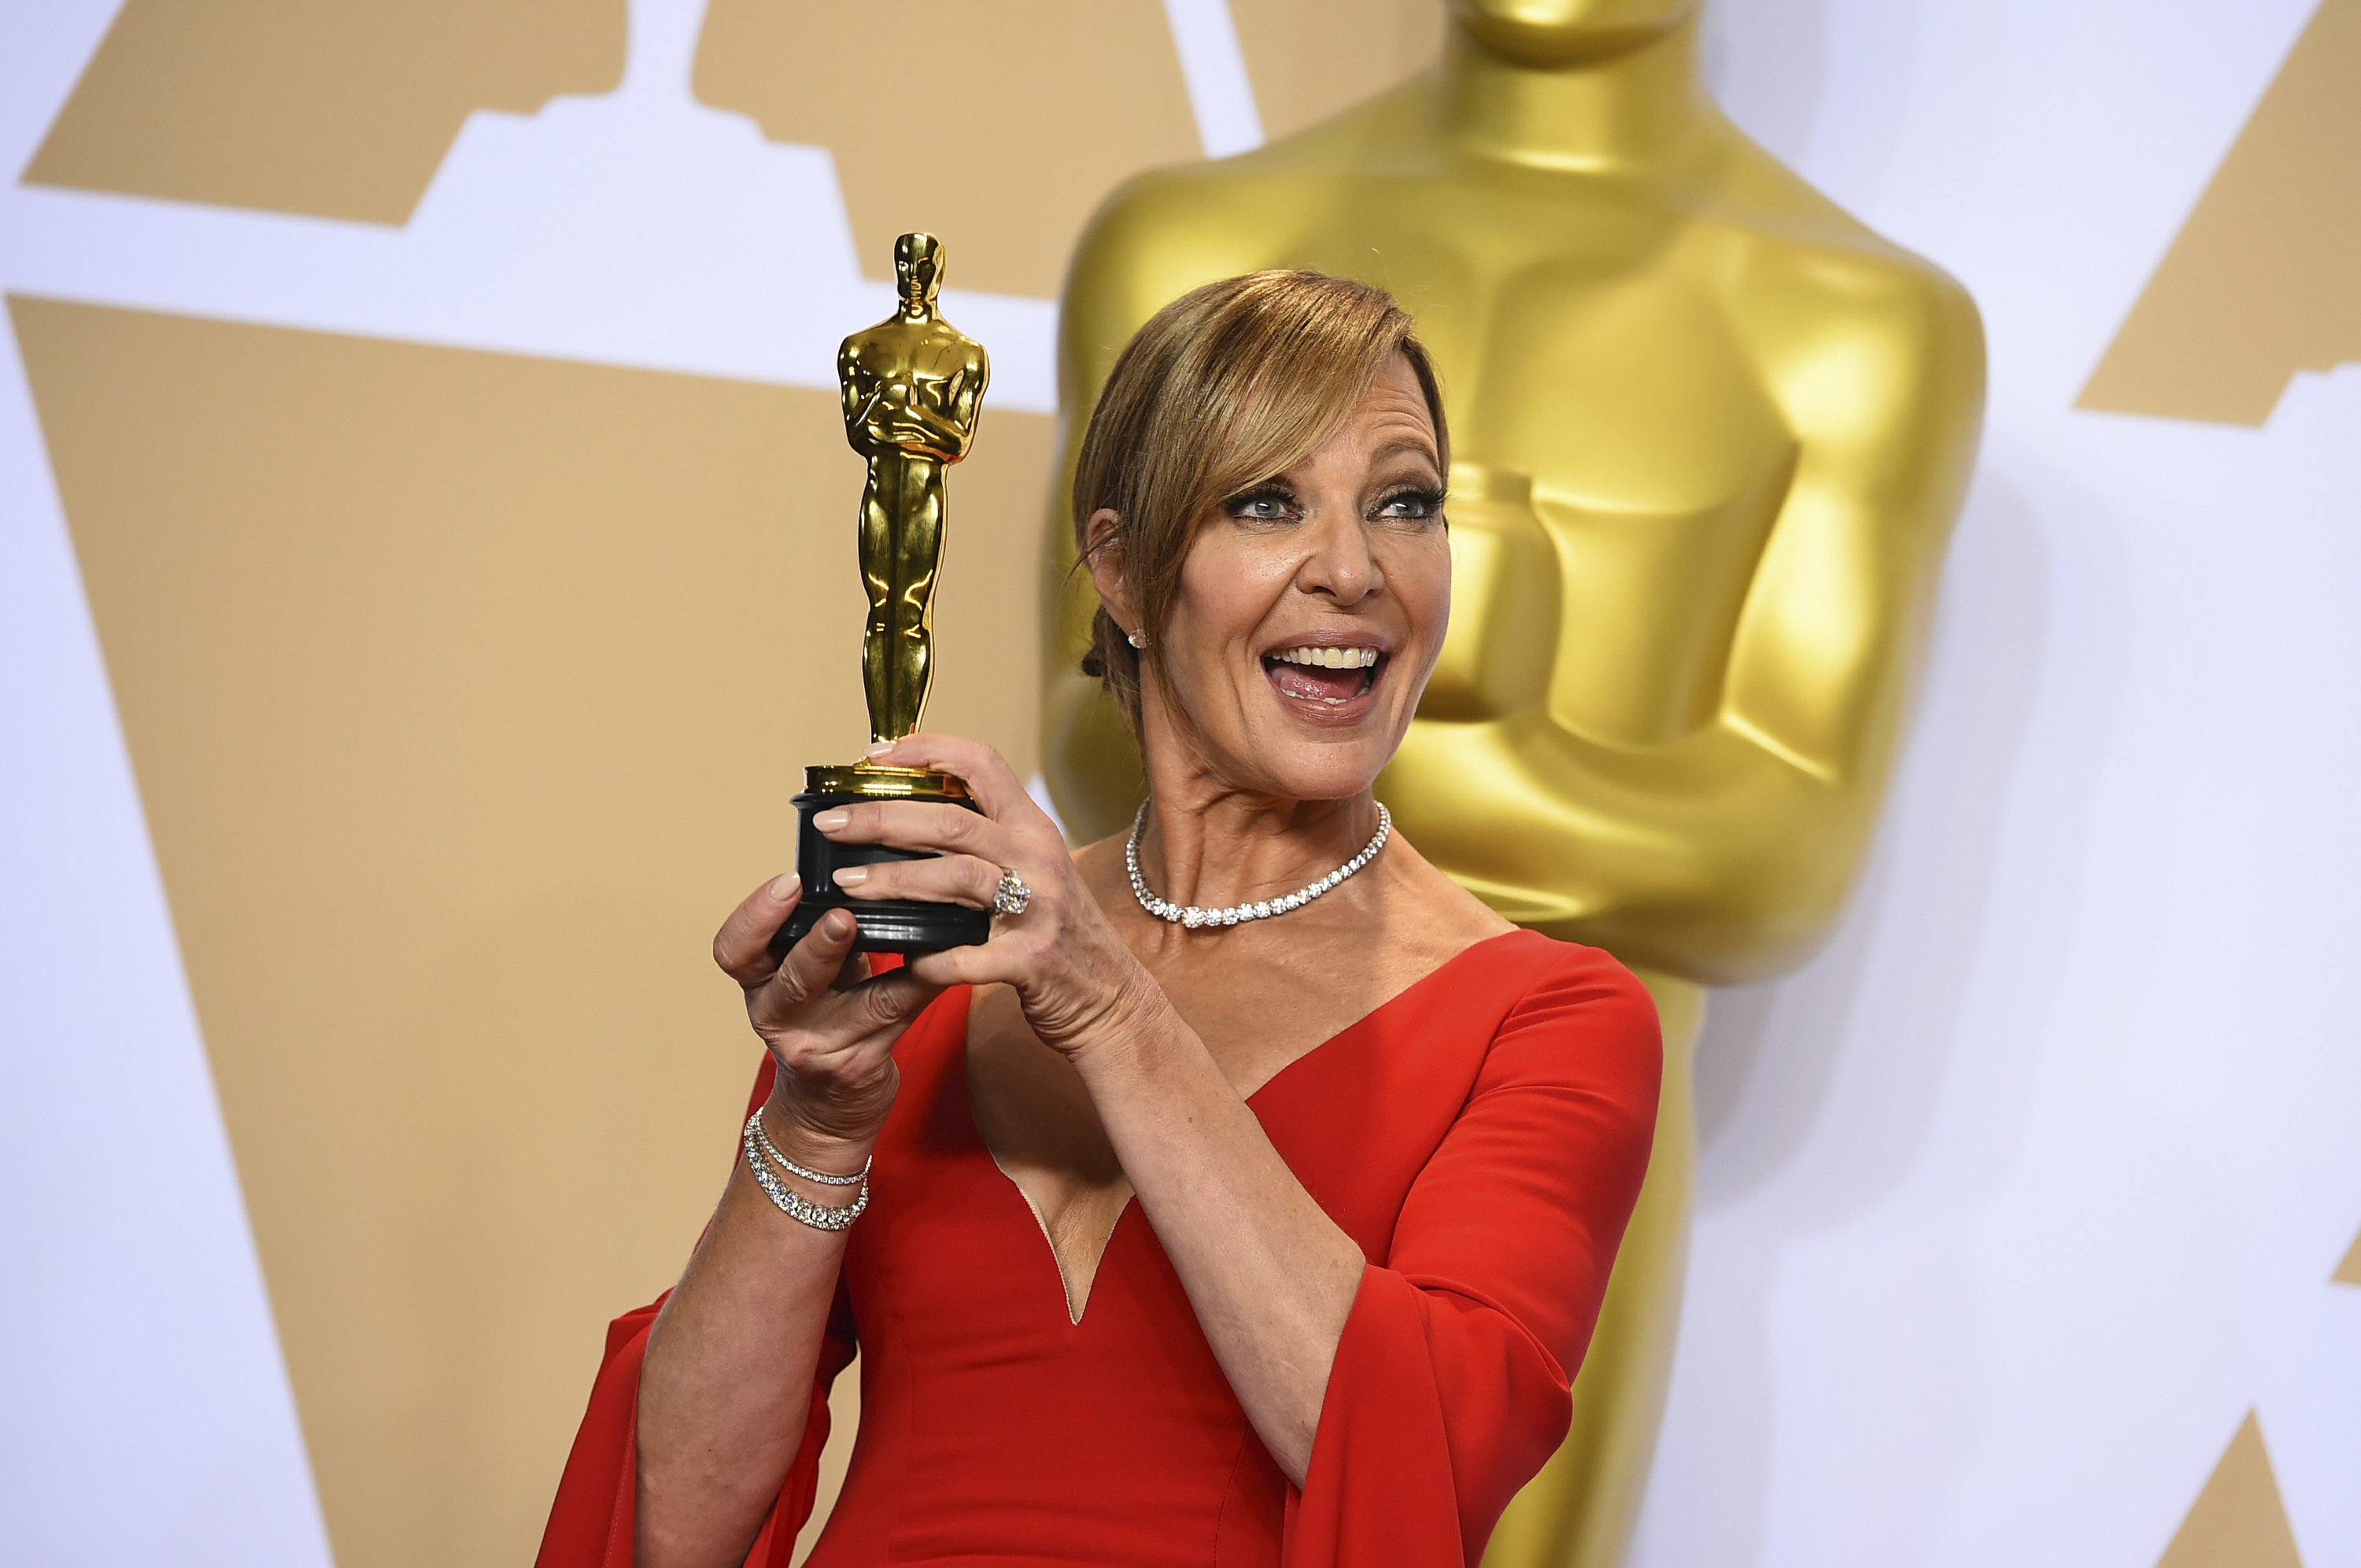 Allison Janney Nudography allison janney wins supporting actress oscar for 'i, tonya'